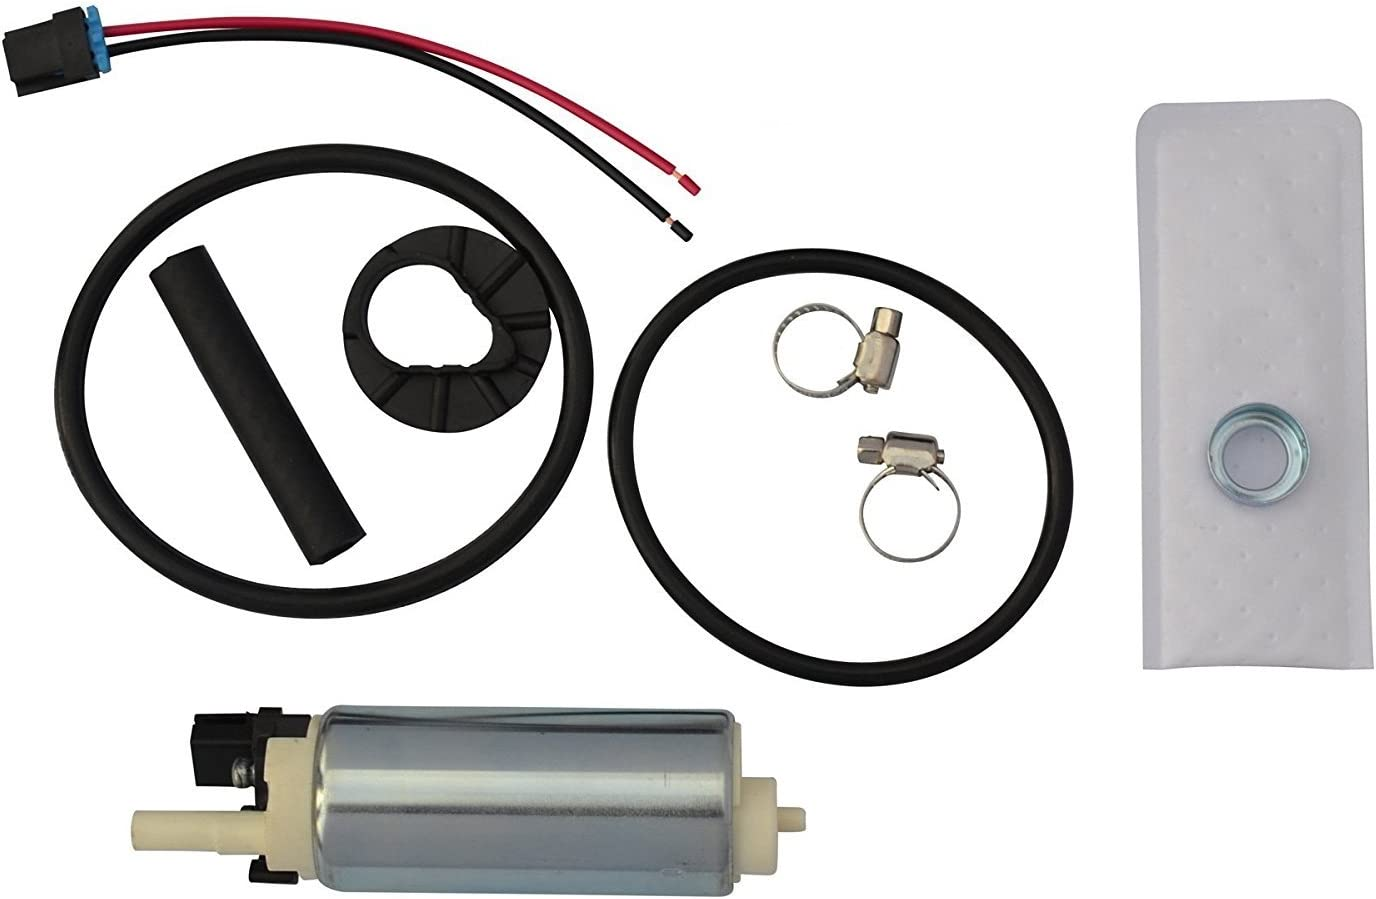 New Electric Fuel Pump Kit for Various Ford and GMC Trucks fits E3270